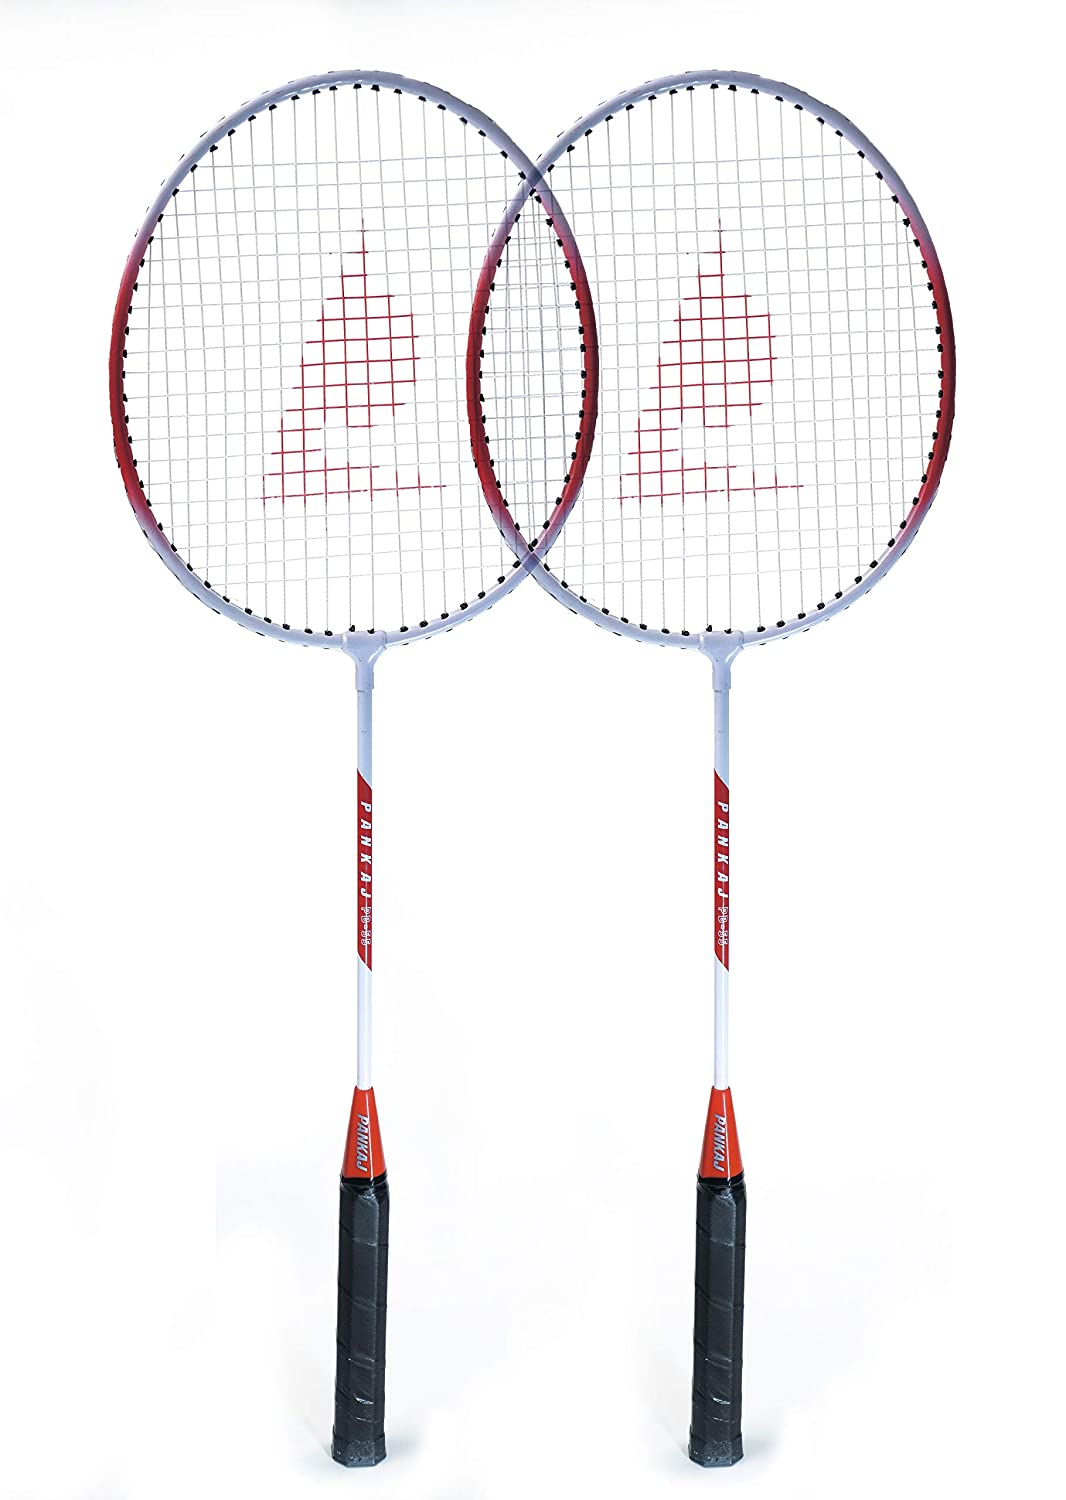 Badminton Racket - PB 55 - Pack for 2 - (Red)